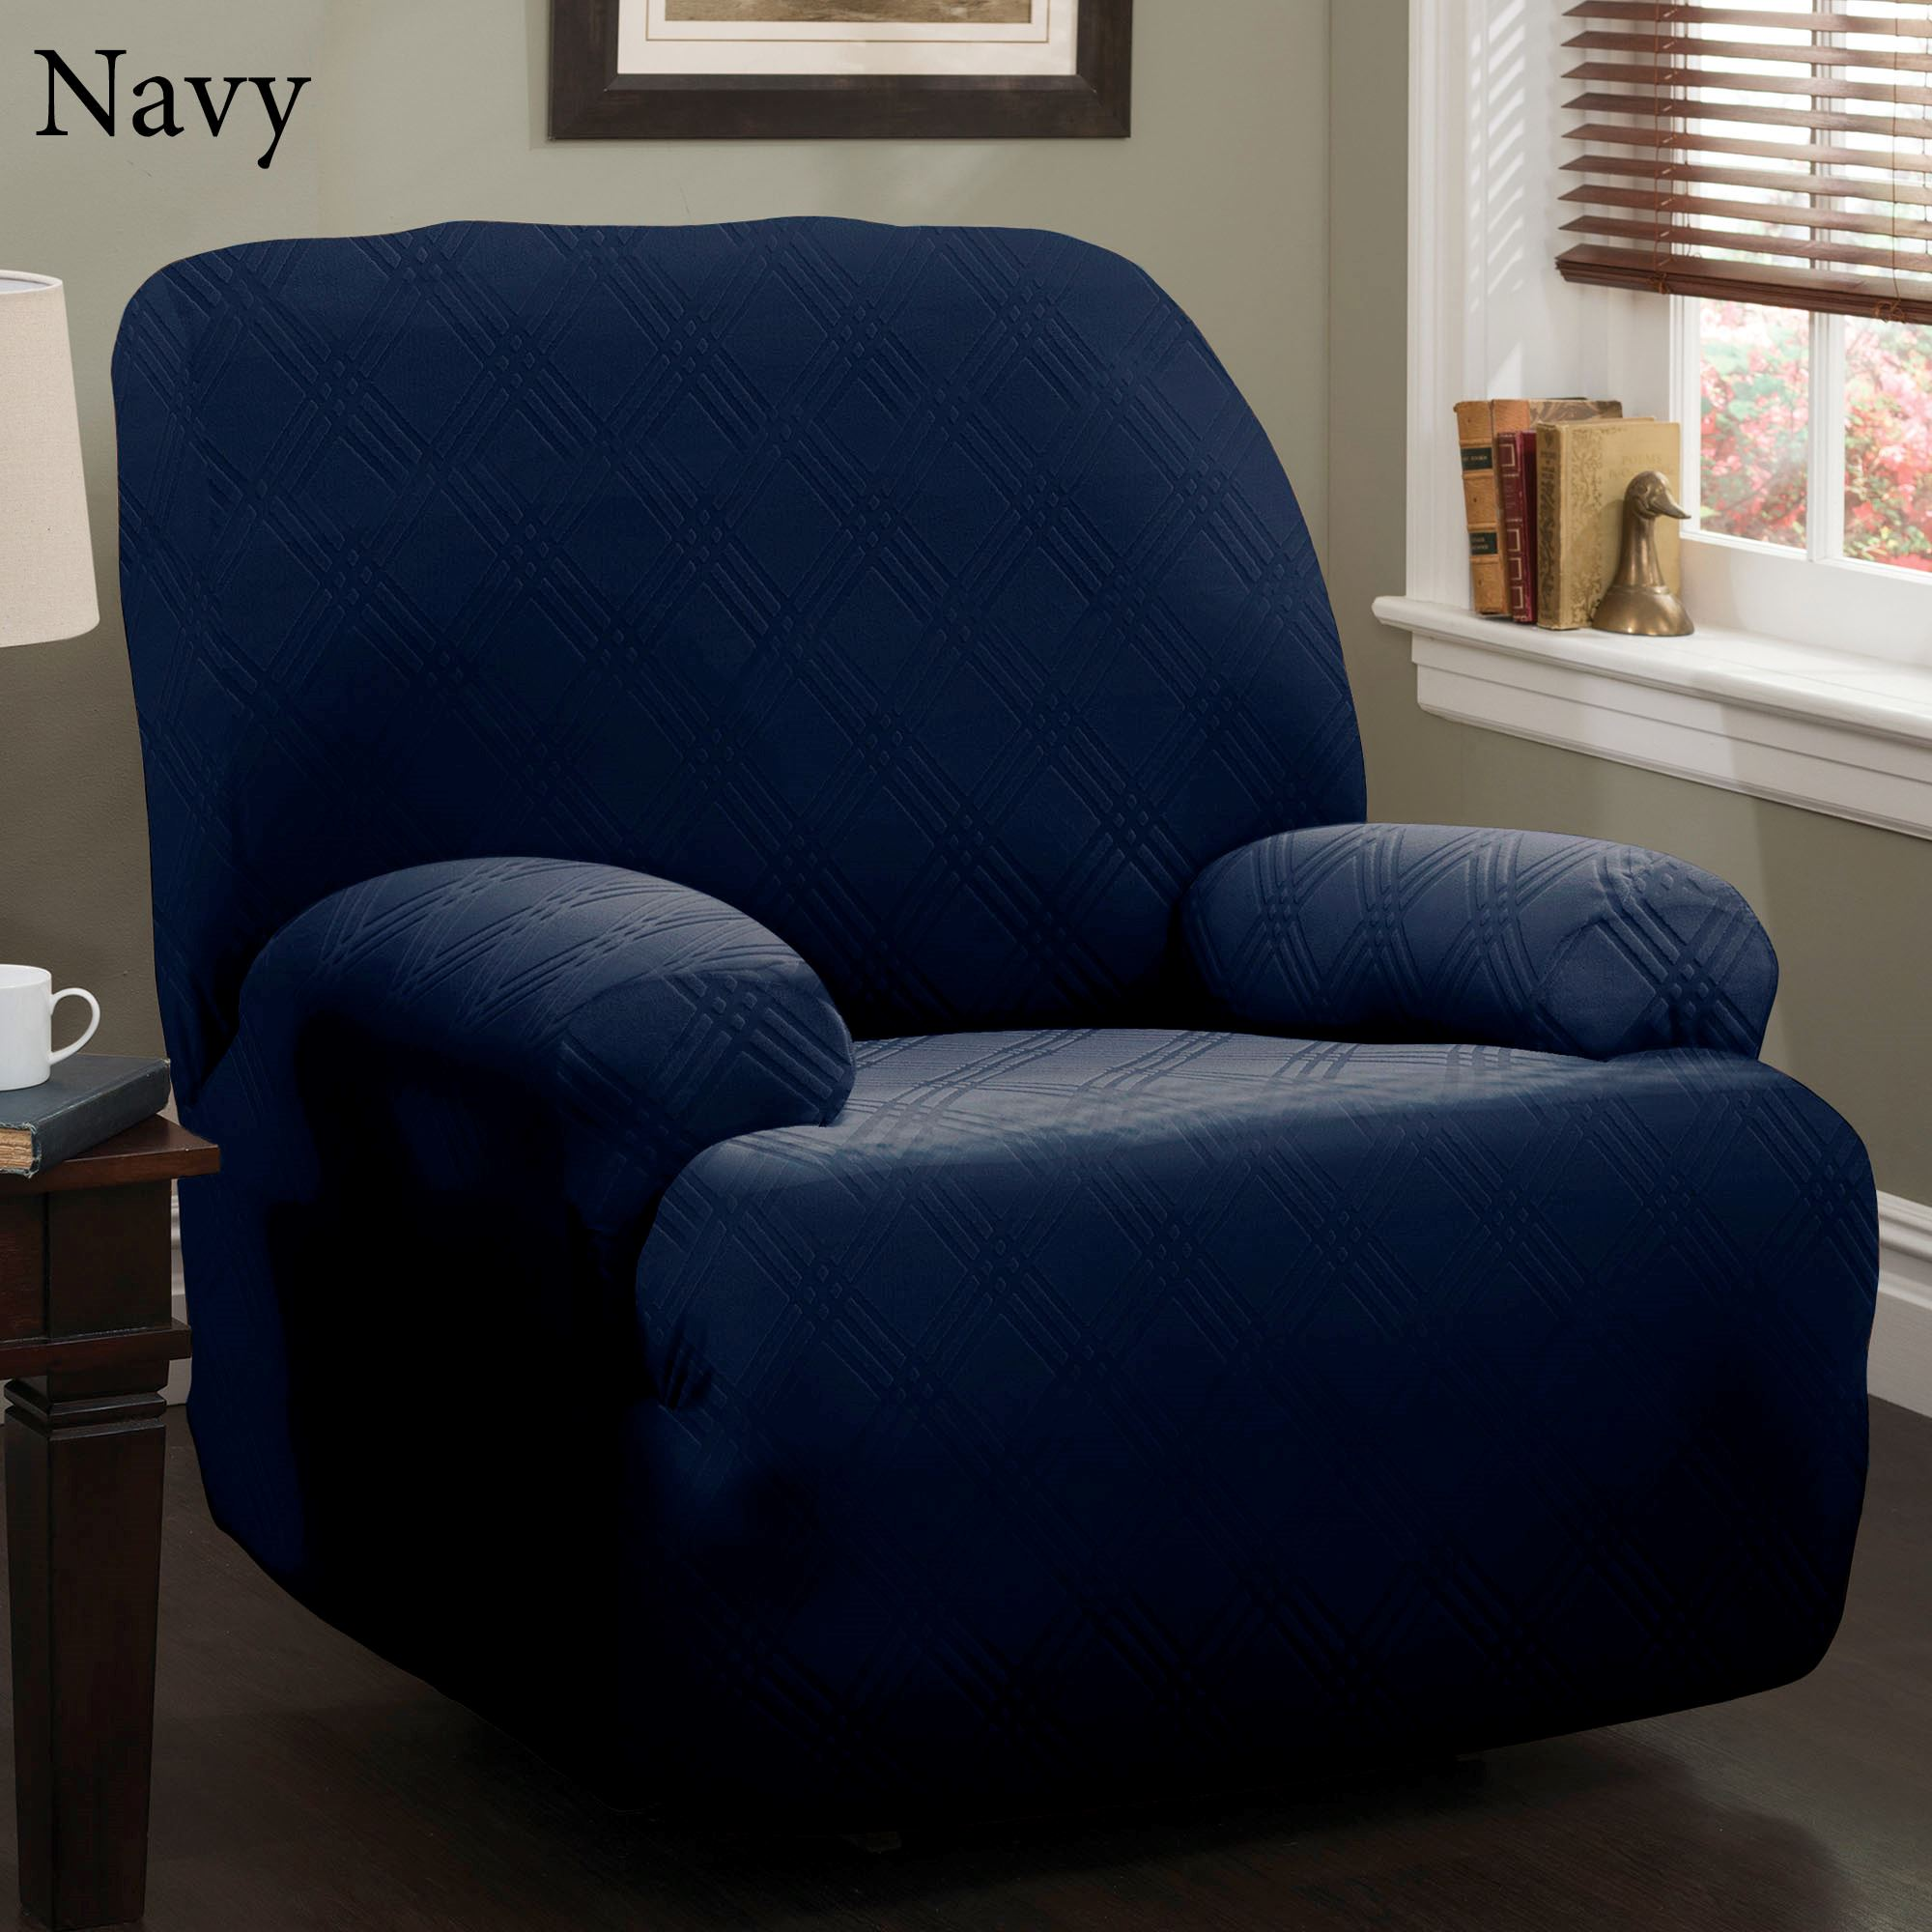 Double Recliner Chair Double Diamond Stretch Jumbo Recliner Slipcovers